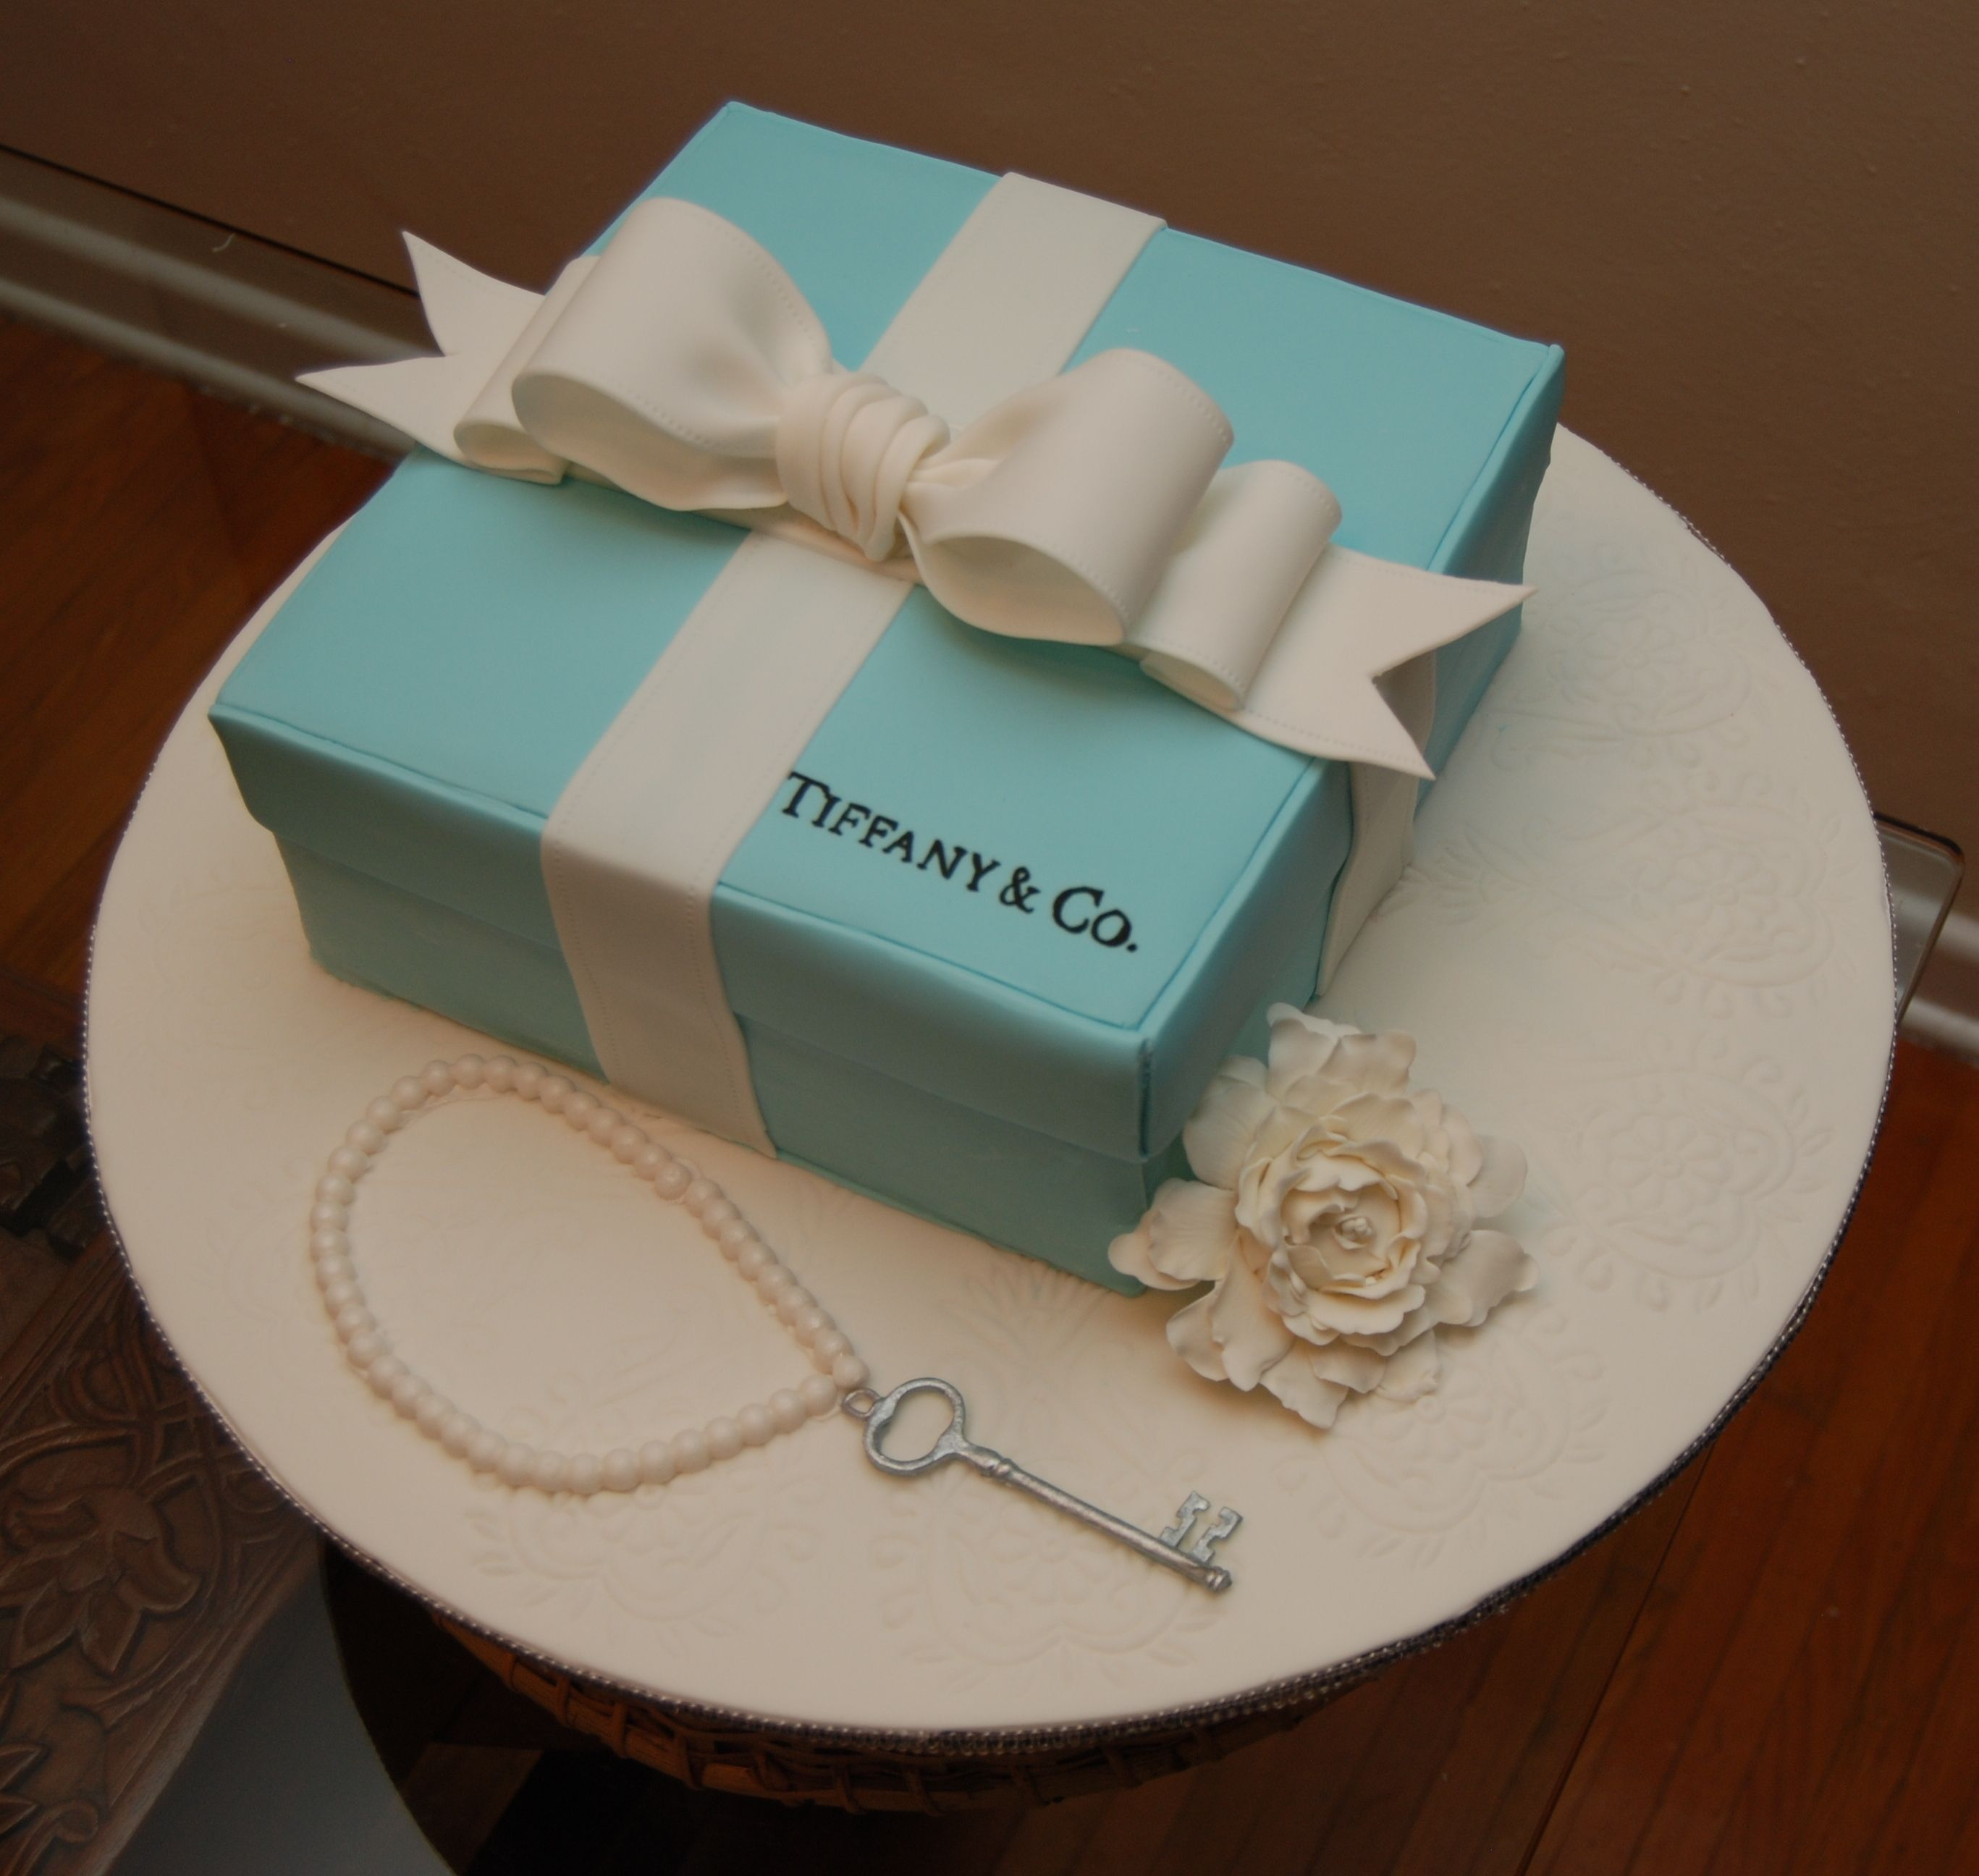 Strange Tiffany Box Birthday Cake With Images Tiffany Cakes Gift Box Funny Birthday Cards Online Fluifree Goldxyz